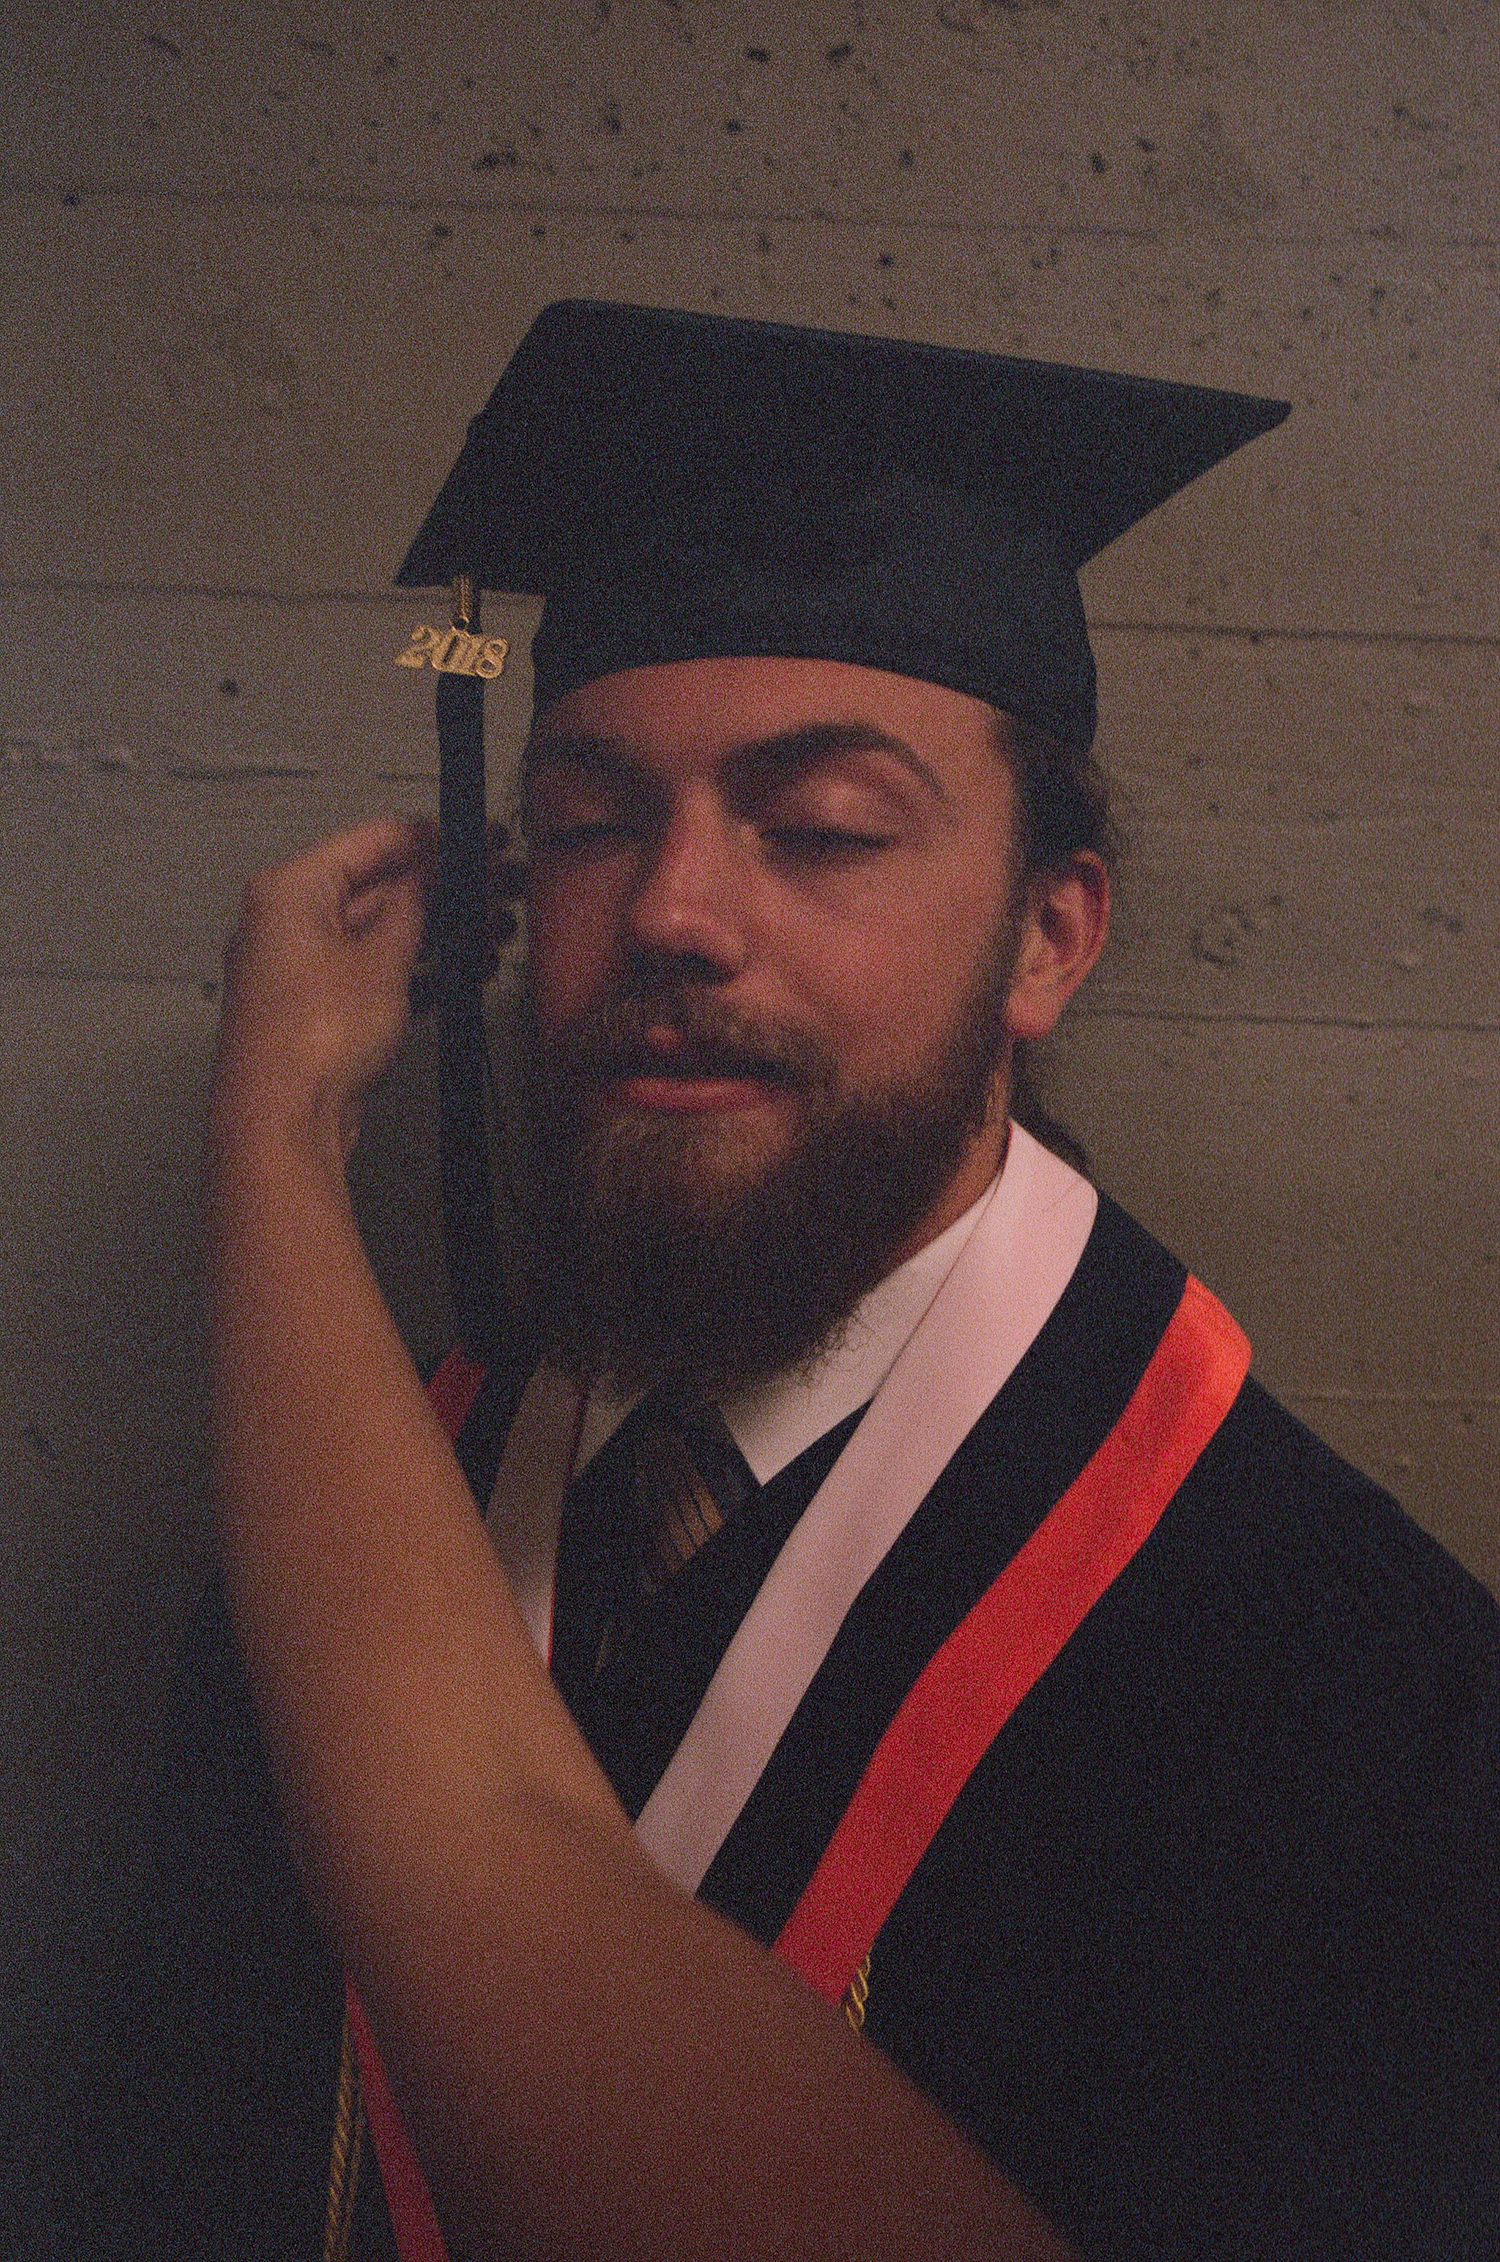 138-Nolan-Grad-2018-high-school-outtake.jpg